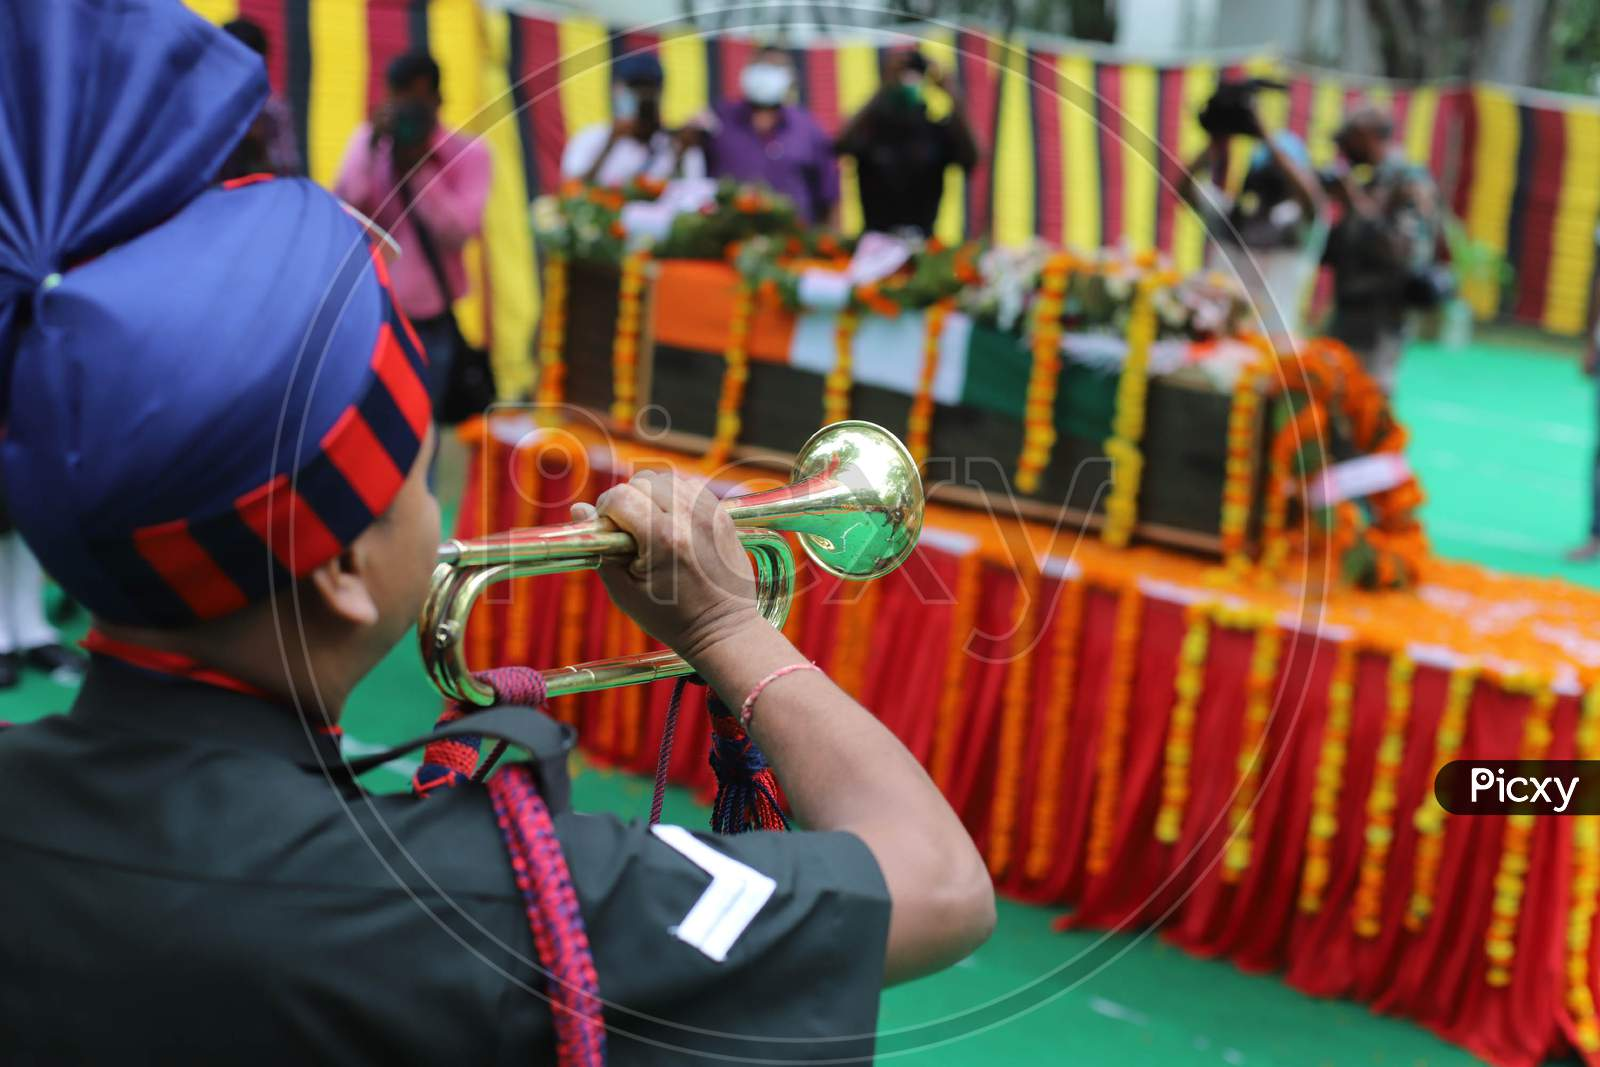 Indian Army Jawans paying official rites at the funeral of  N K Deepak Singh, An Indian Soldier Who Was Killed In A Border Clash With Chinese Troops In Ladakh Region, At Military Hospital In Prayagraj, June 19, 2020.